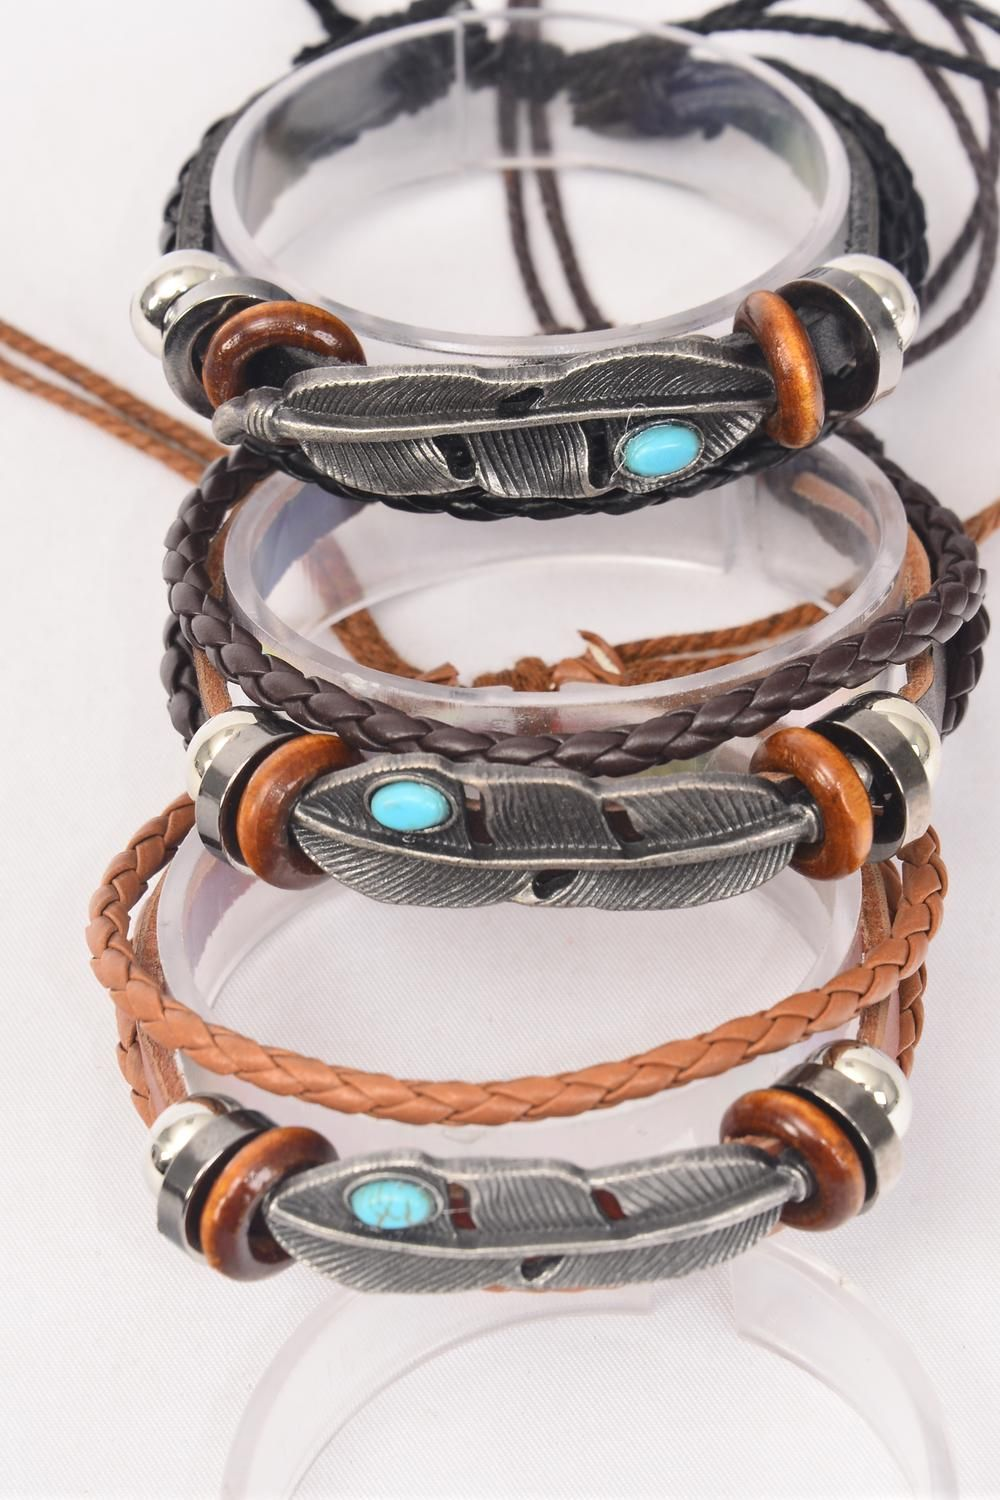 Bracelet Real Leather Band & Feather Triple Strand/DZ match 03104 **Unisex** Adjustable,4 of each Color Mix,Individual Hang tag & OPP Bag & UPC Code